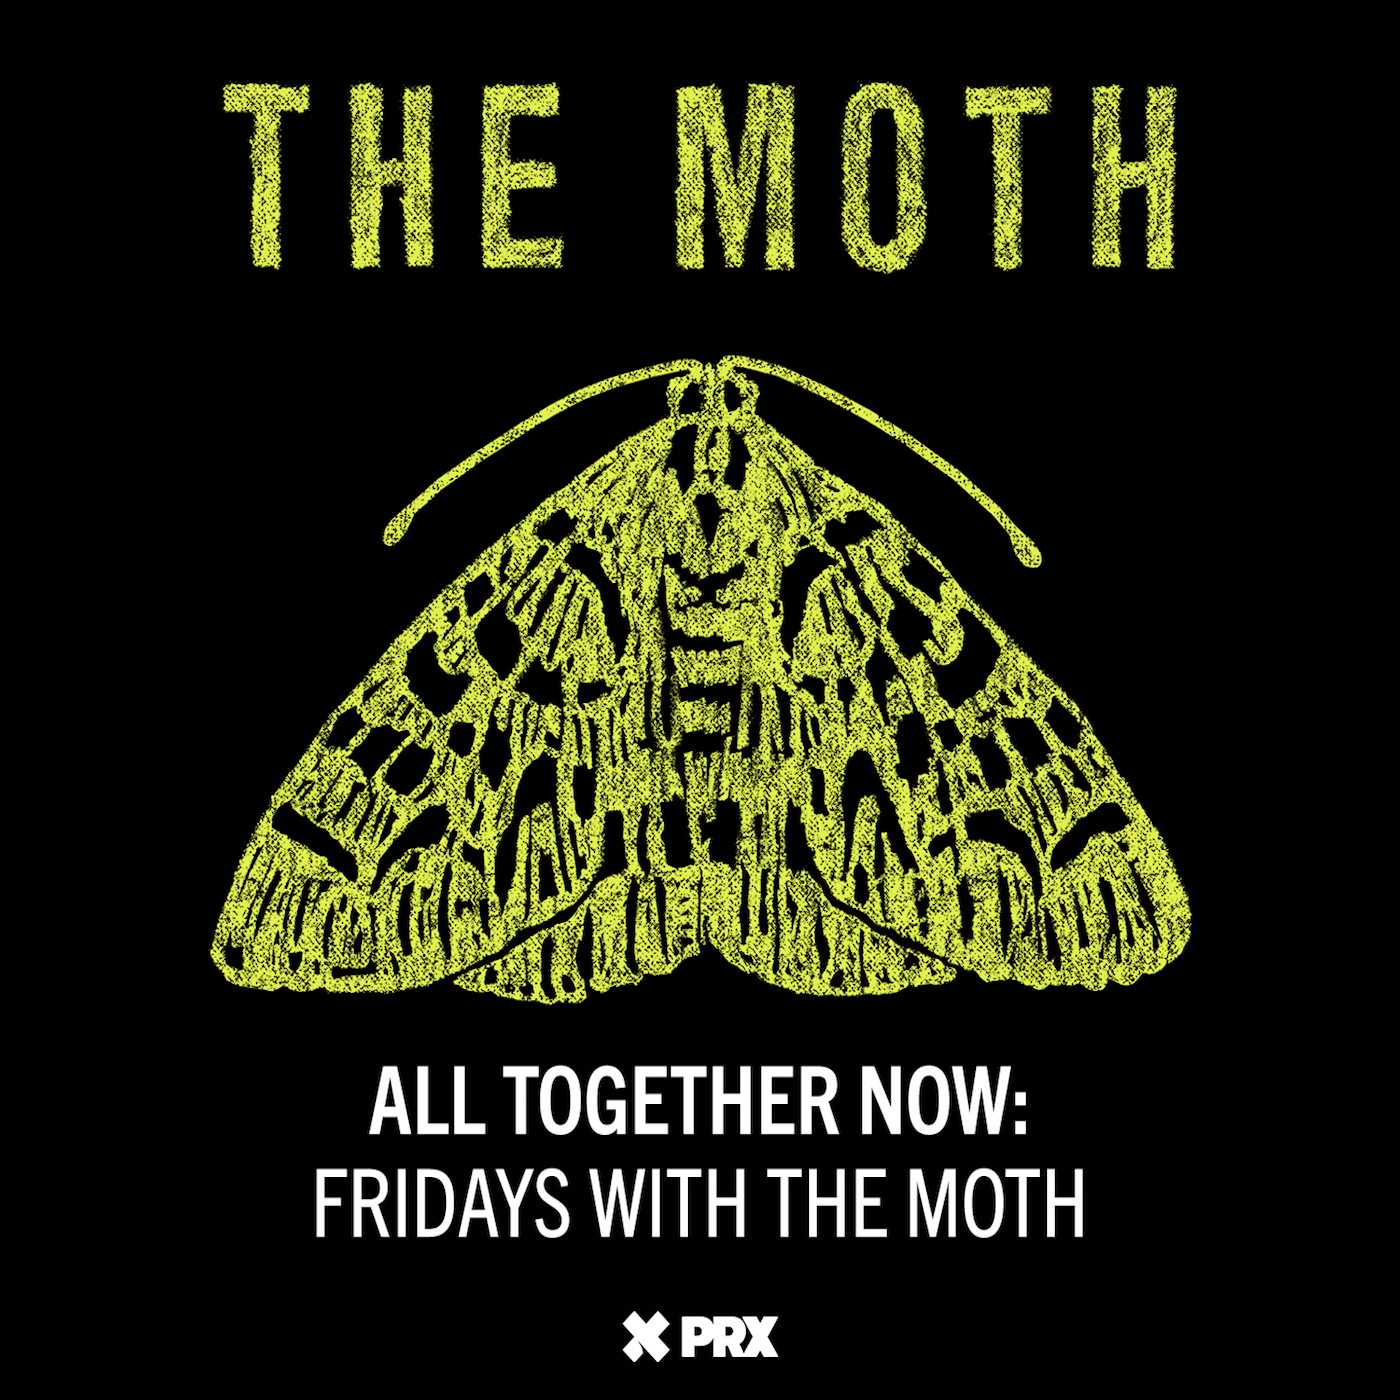 All Together Now: Fridays with The Moth - Aydrea Walden & Katie Vaca